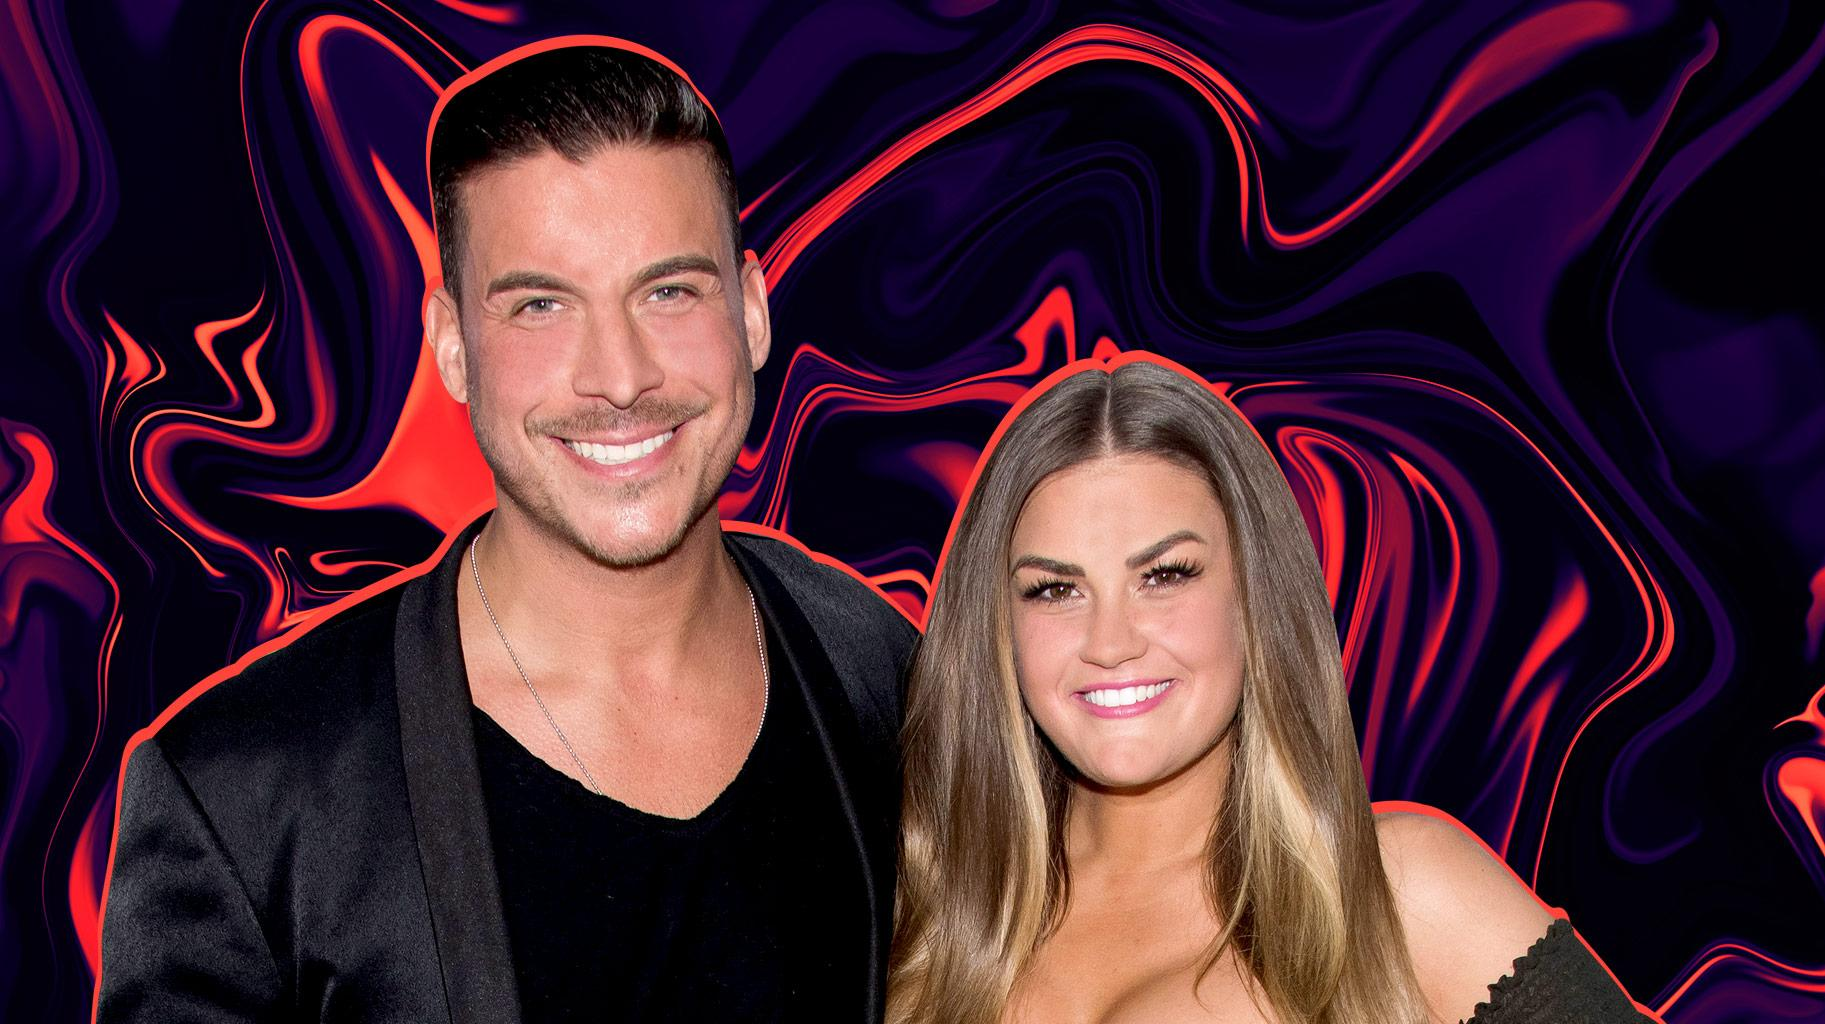 Jax Taylor Terrified Of Brittany Cartwright Getting Pregnant Amid The COVID-19 Pandemic - Here's Why They've Put Their Baby Plans On Pause!